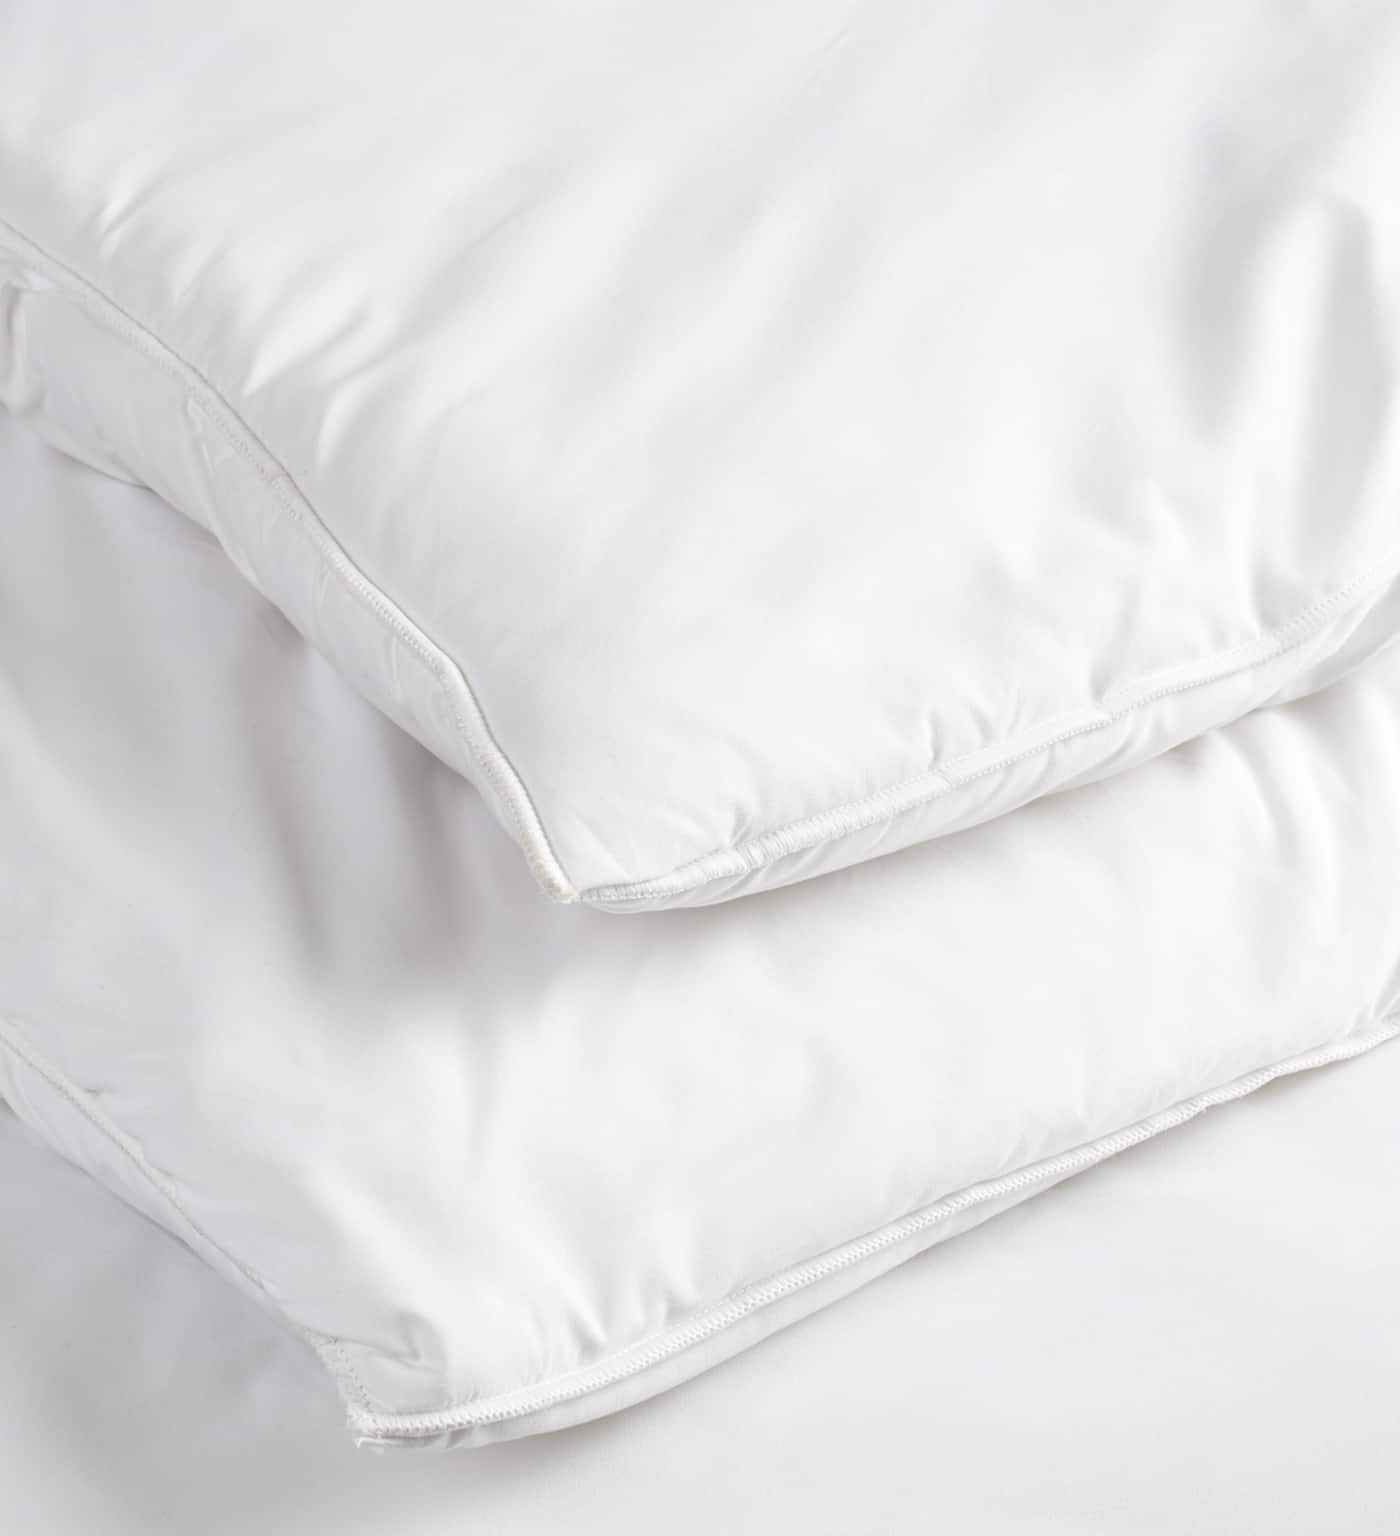 Photo of some white pillows